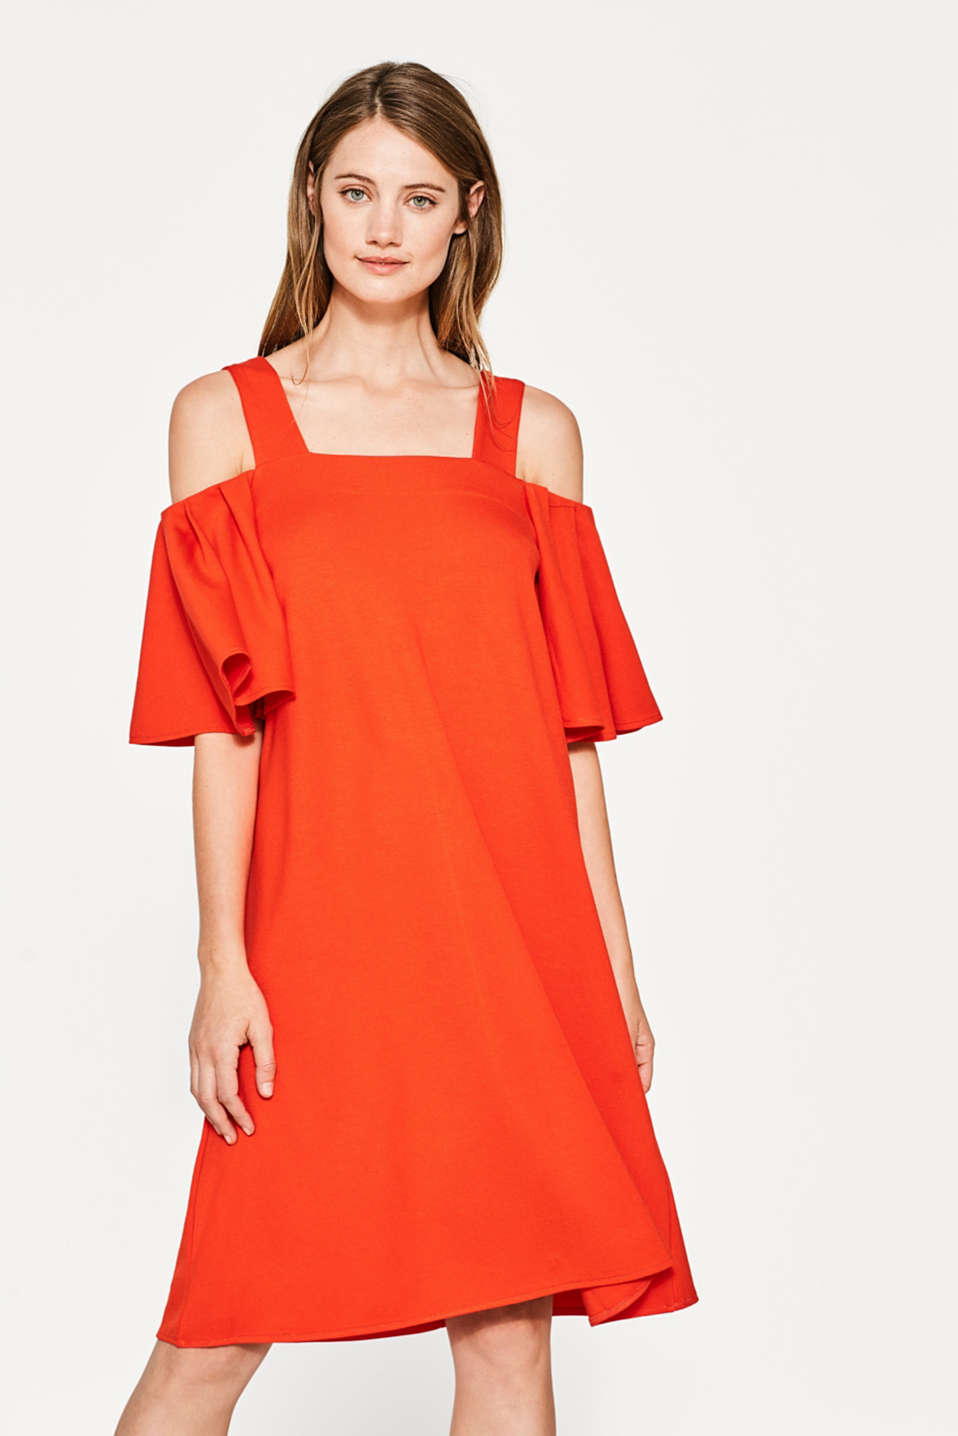 Esprit - Stretch jersey dress with flounce sleeves